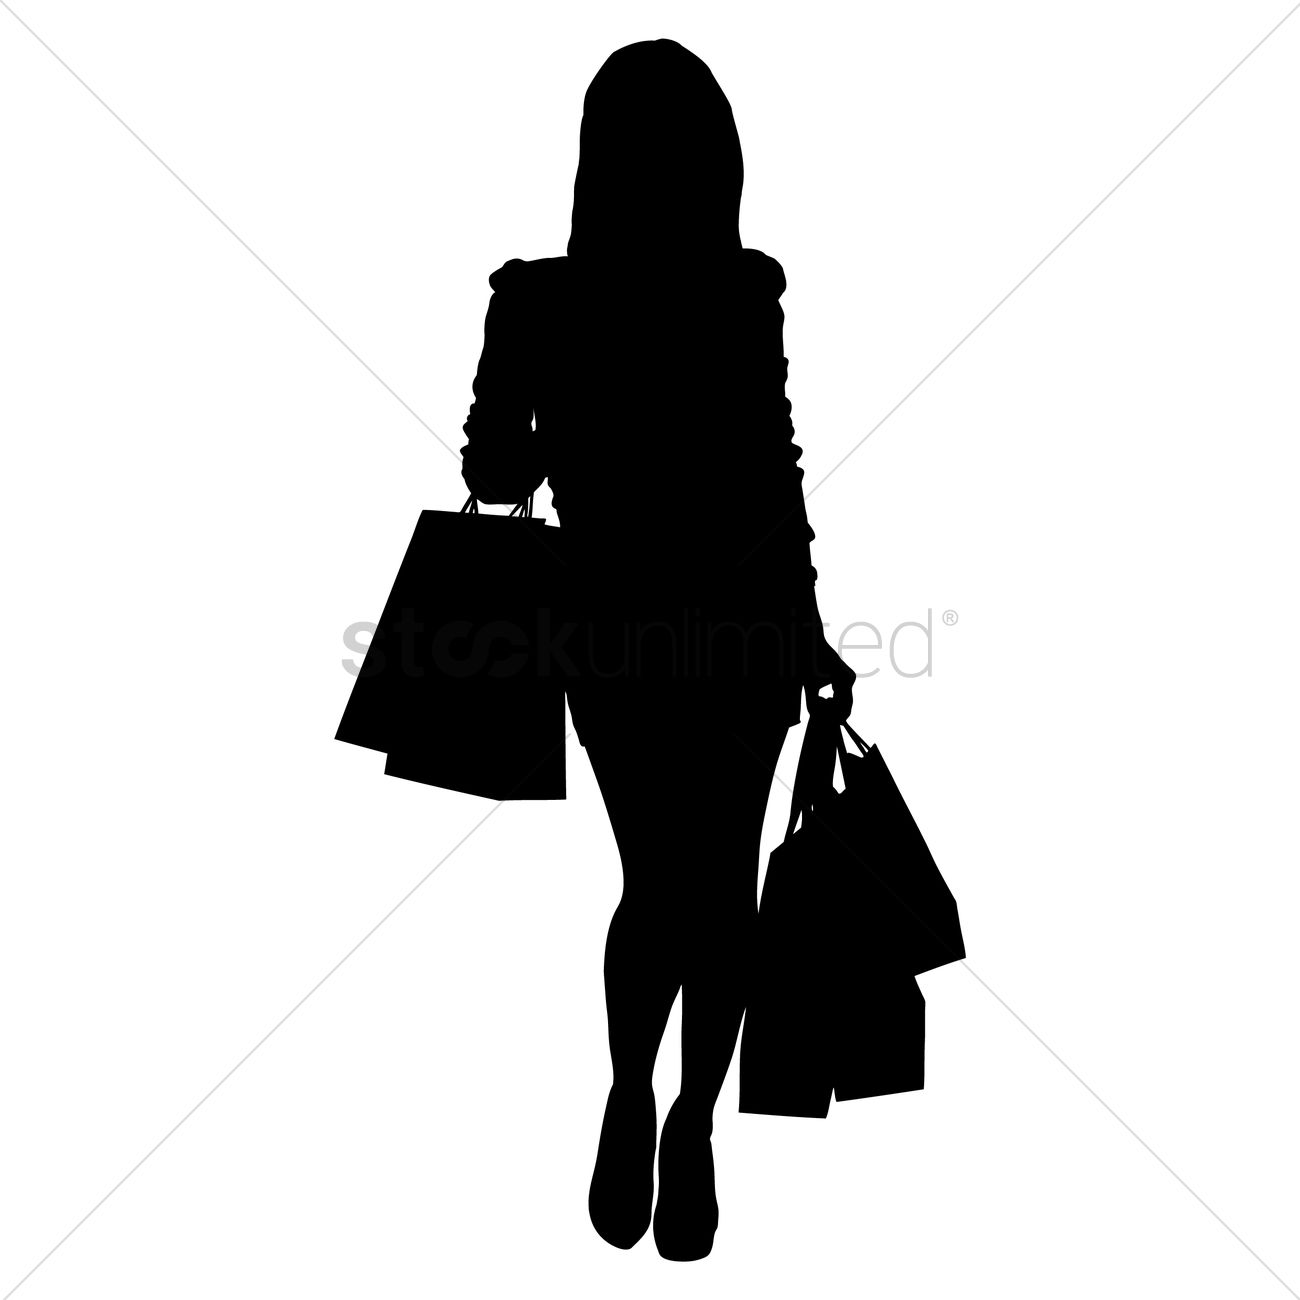 1f409f0e006 Silhouette of a lady with shopping bags Vector Image - 1456025 ...